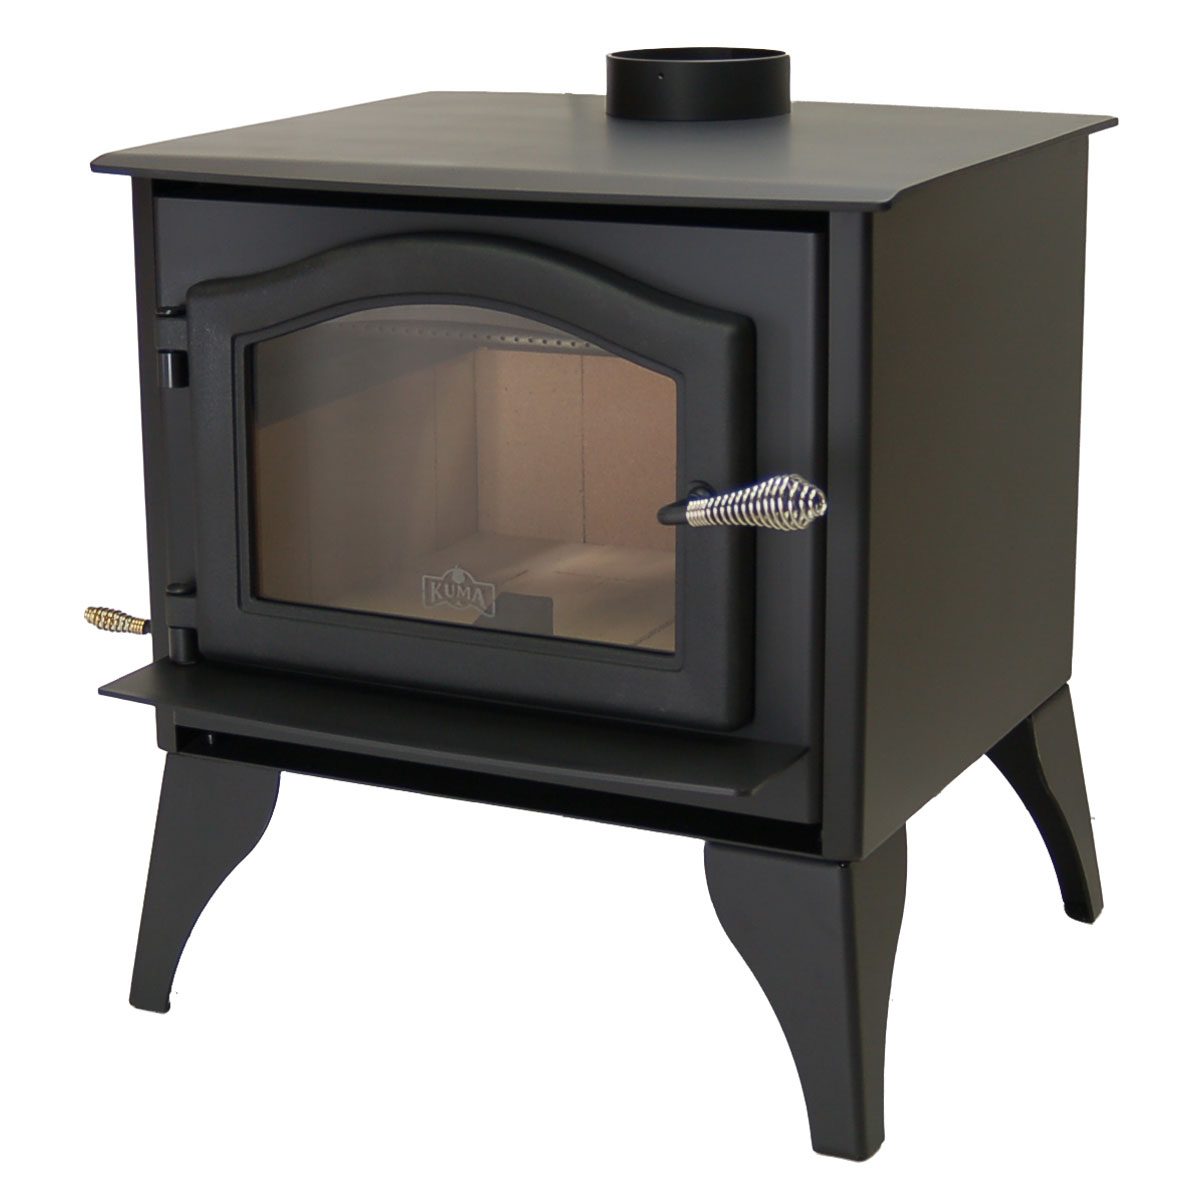 Kuma Ashwood wood stove with steel legs and black door - Ashwood Wood Stove And Fireplace From Kuma Stoves